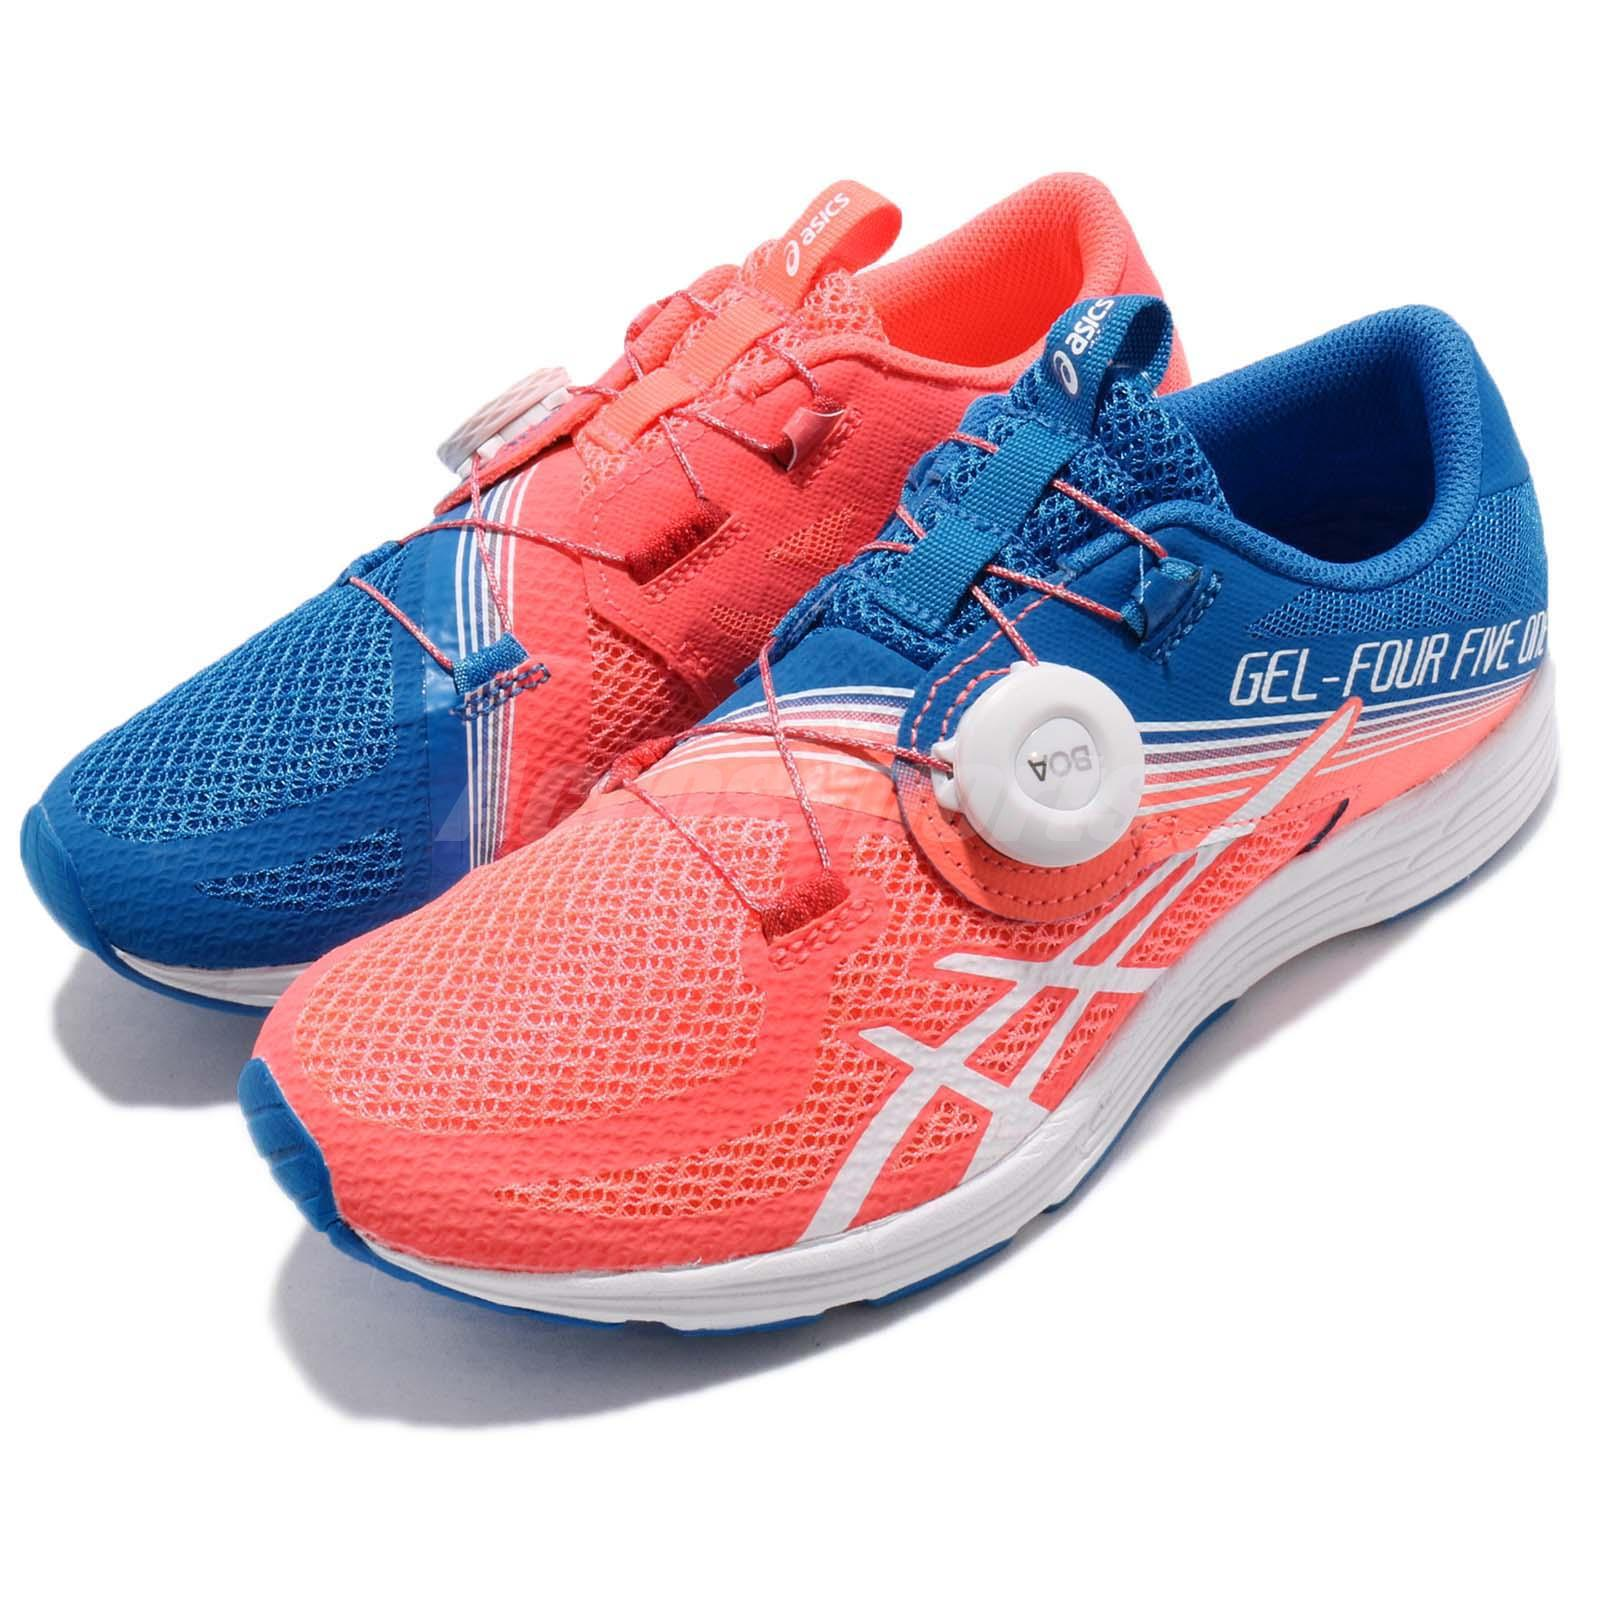 Details about Asics Gel-451 BOA Flash Coral Blue Women Running Shoes Sneakers T874N-0601